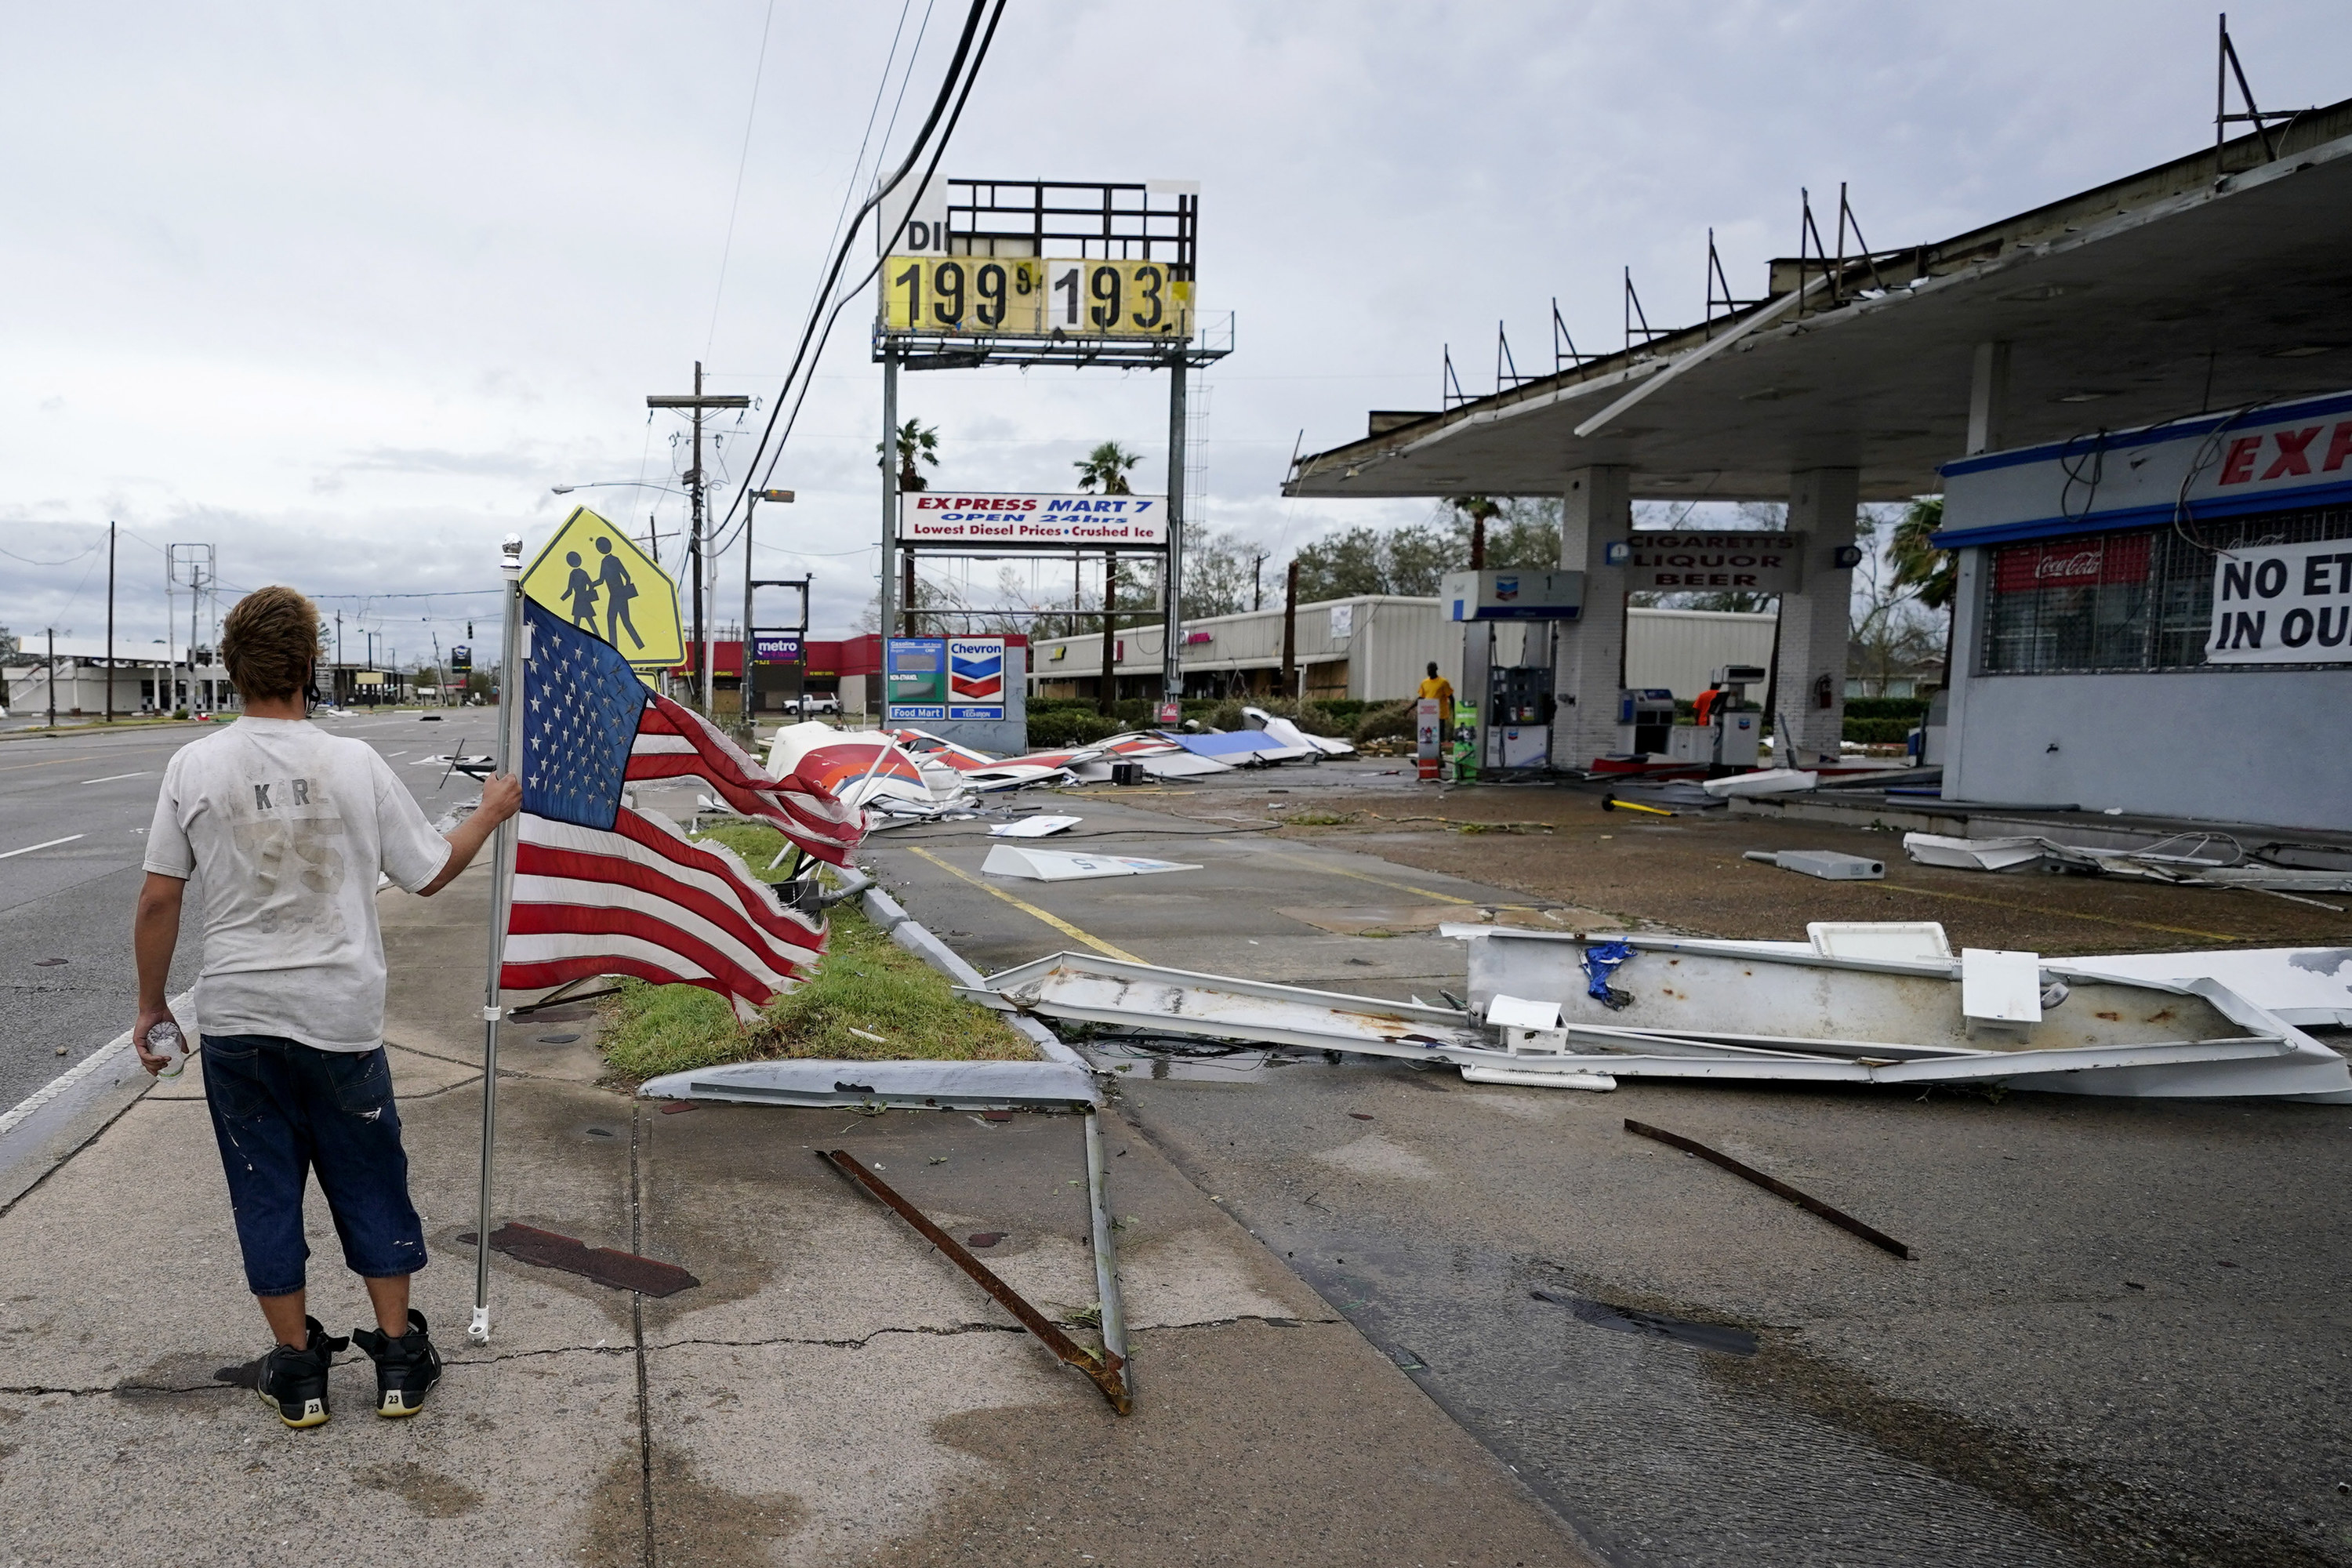 a man stands with a flag next to a lot of debris